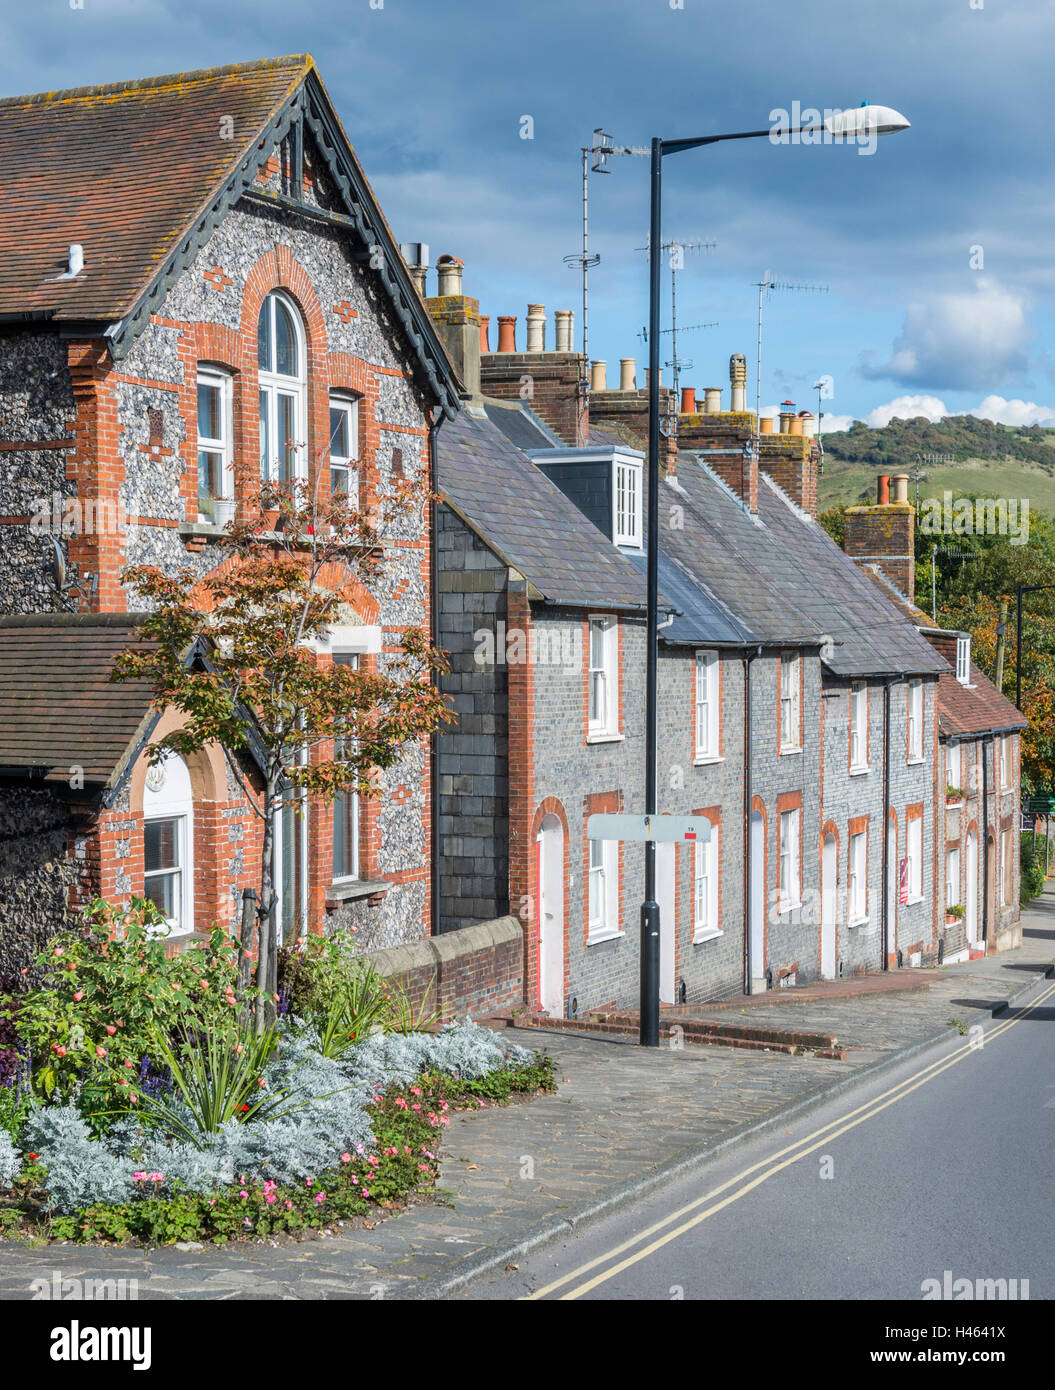 Row of terraced houses on a hill in Lewes, East Sussex, England, UK. - Stock Image